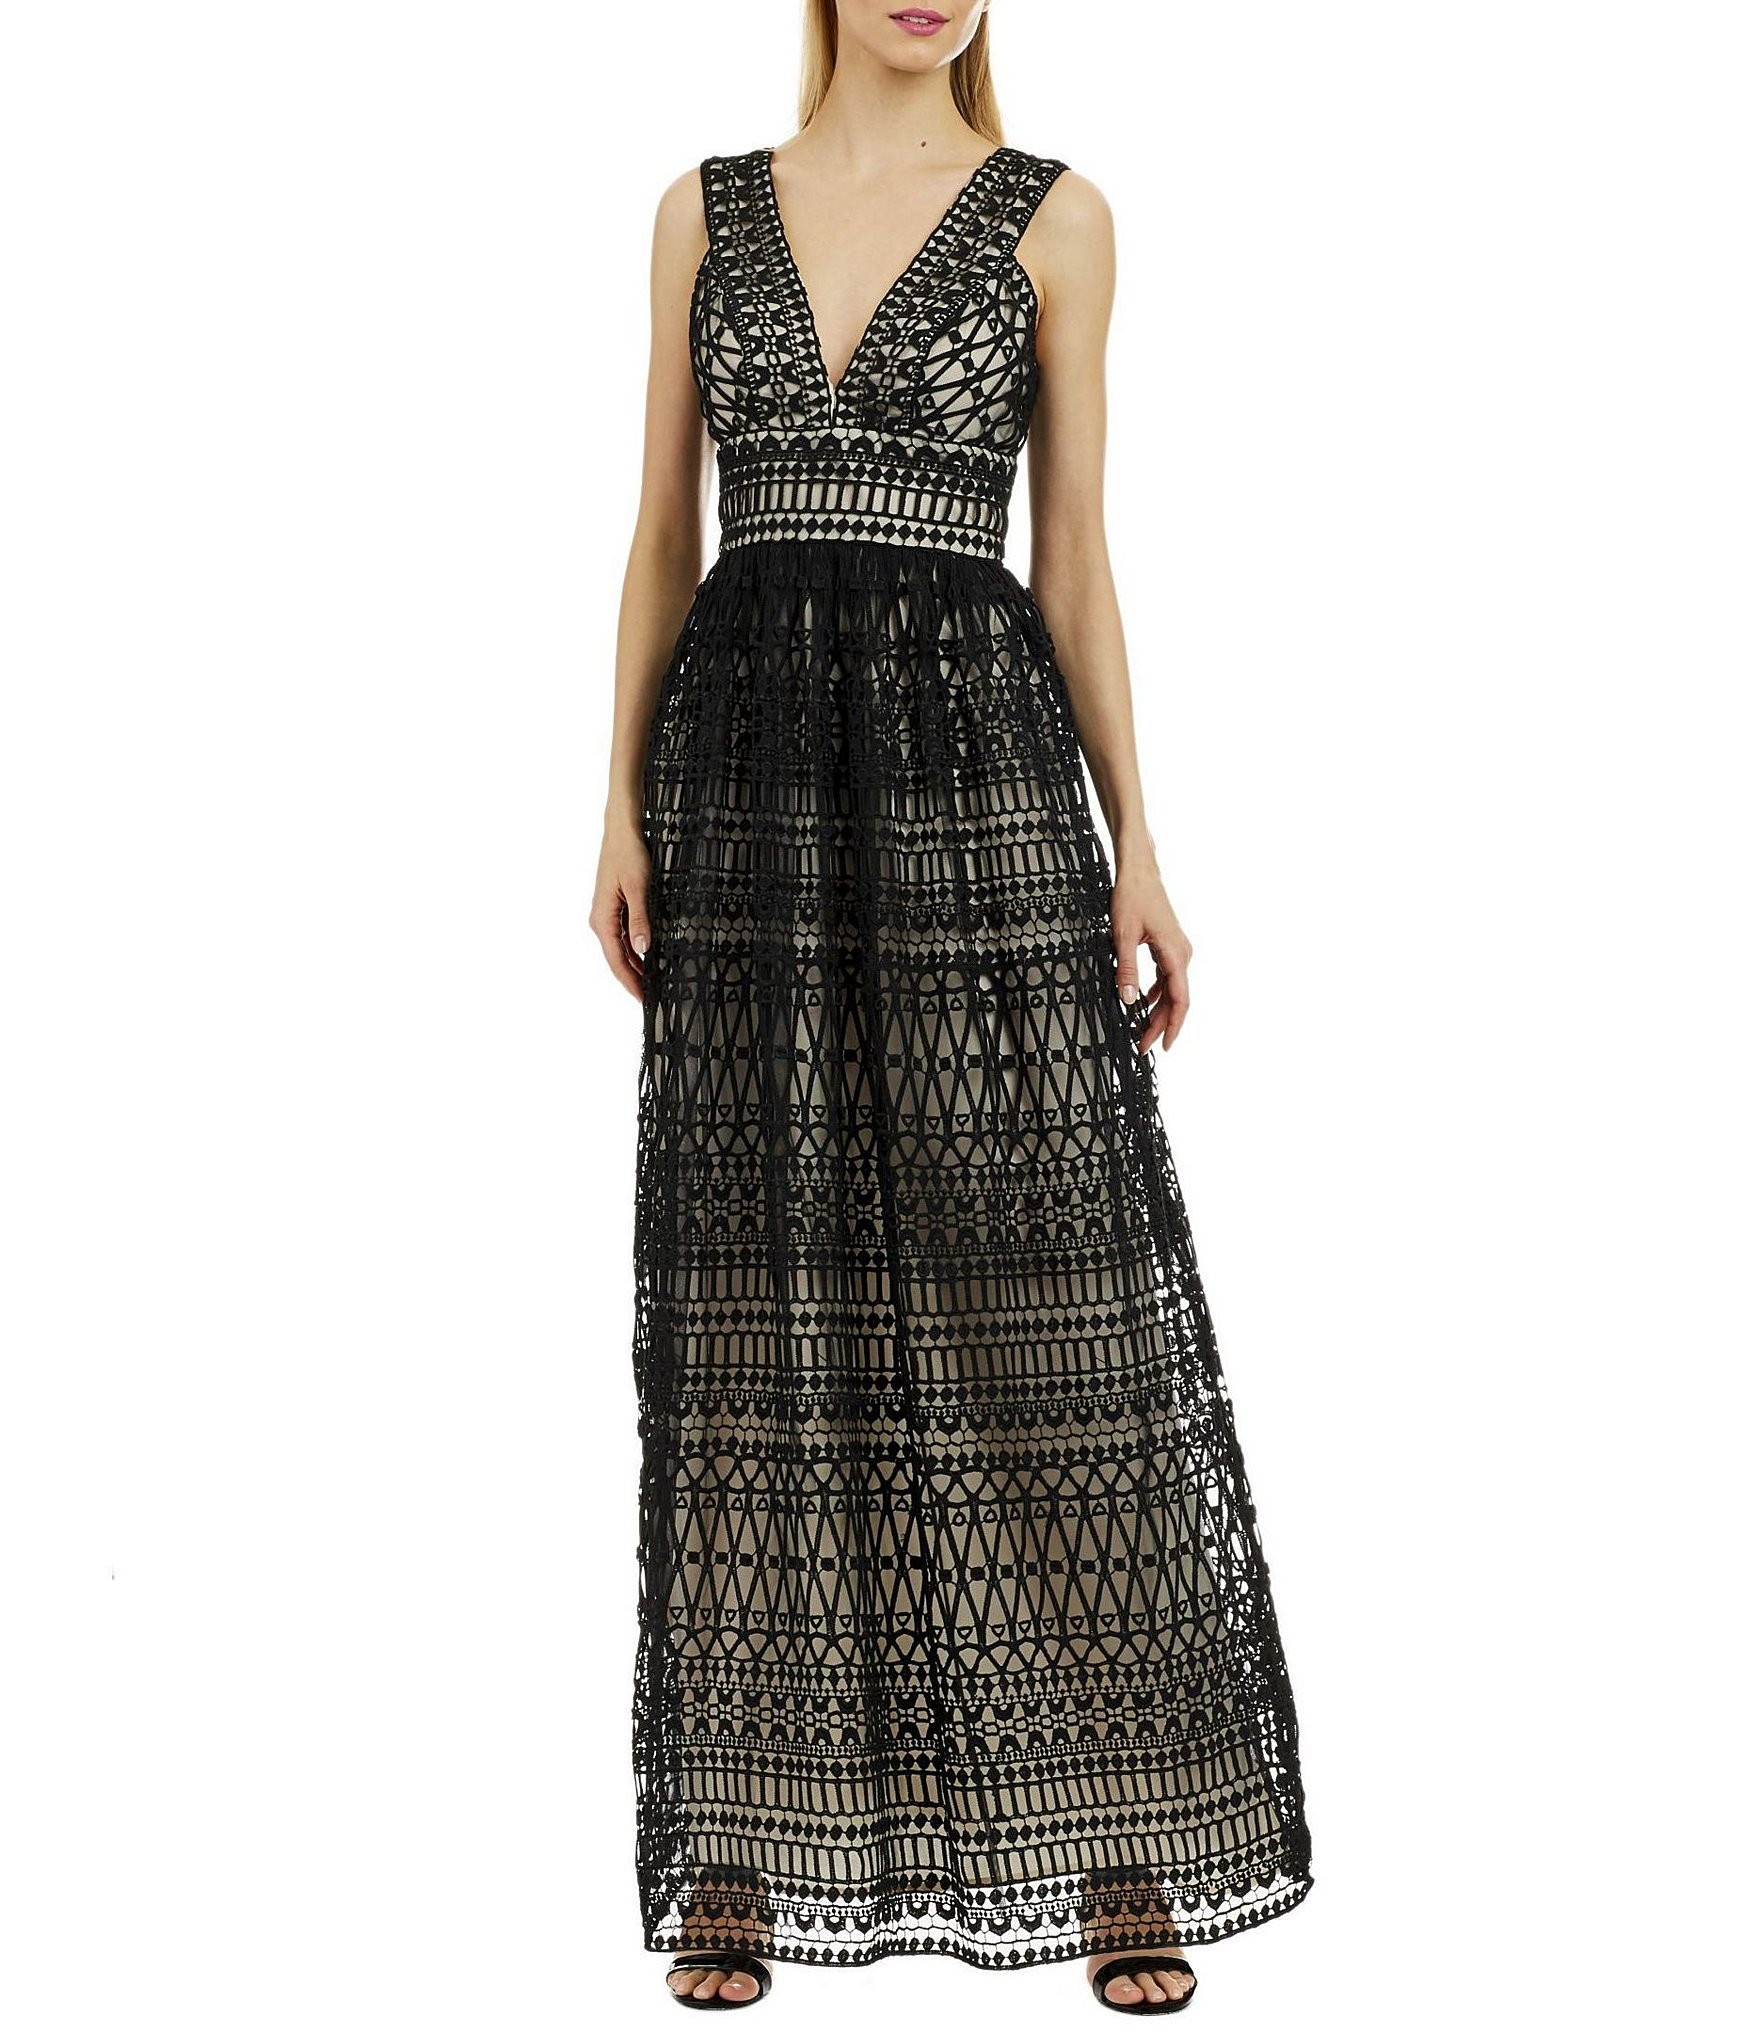 Maxi Dresses Home Maxi Dresses Page 1 of 6 Sort by: Featured Best Selling Alphabetically: A-Z Alphabetically: Z-A Price: Low to High Price: High to Low Date: New to Old Date: Old to New.